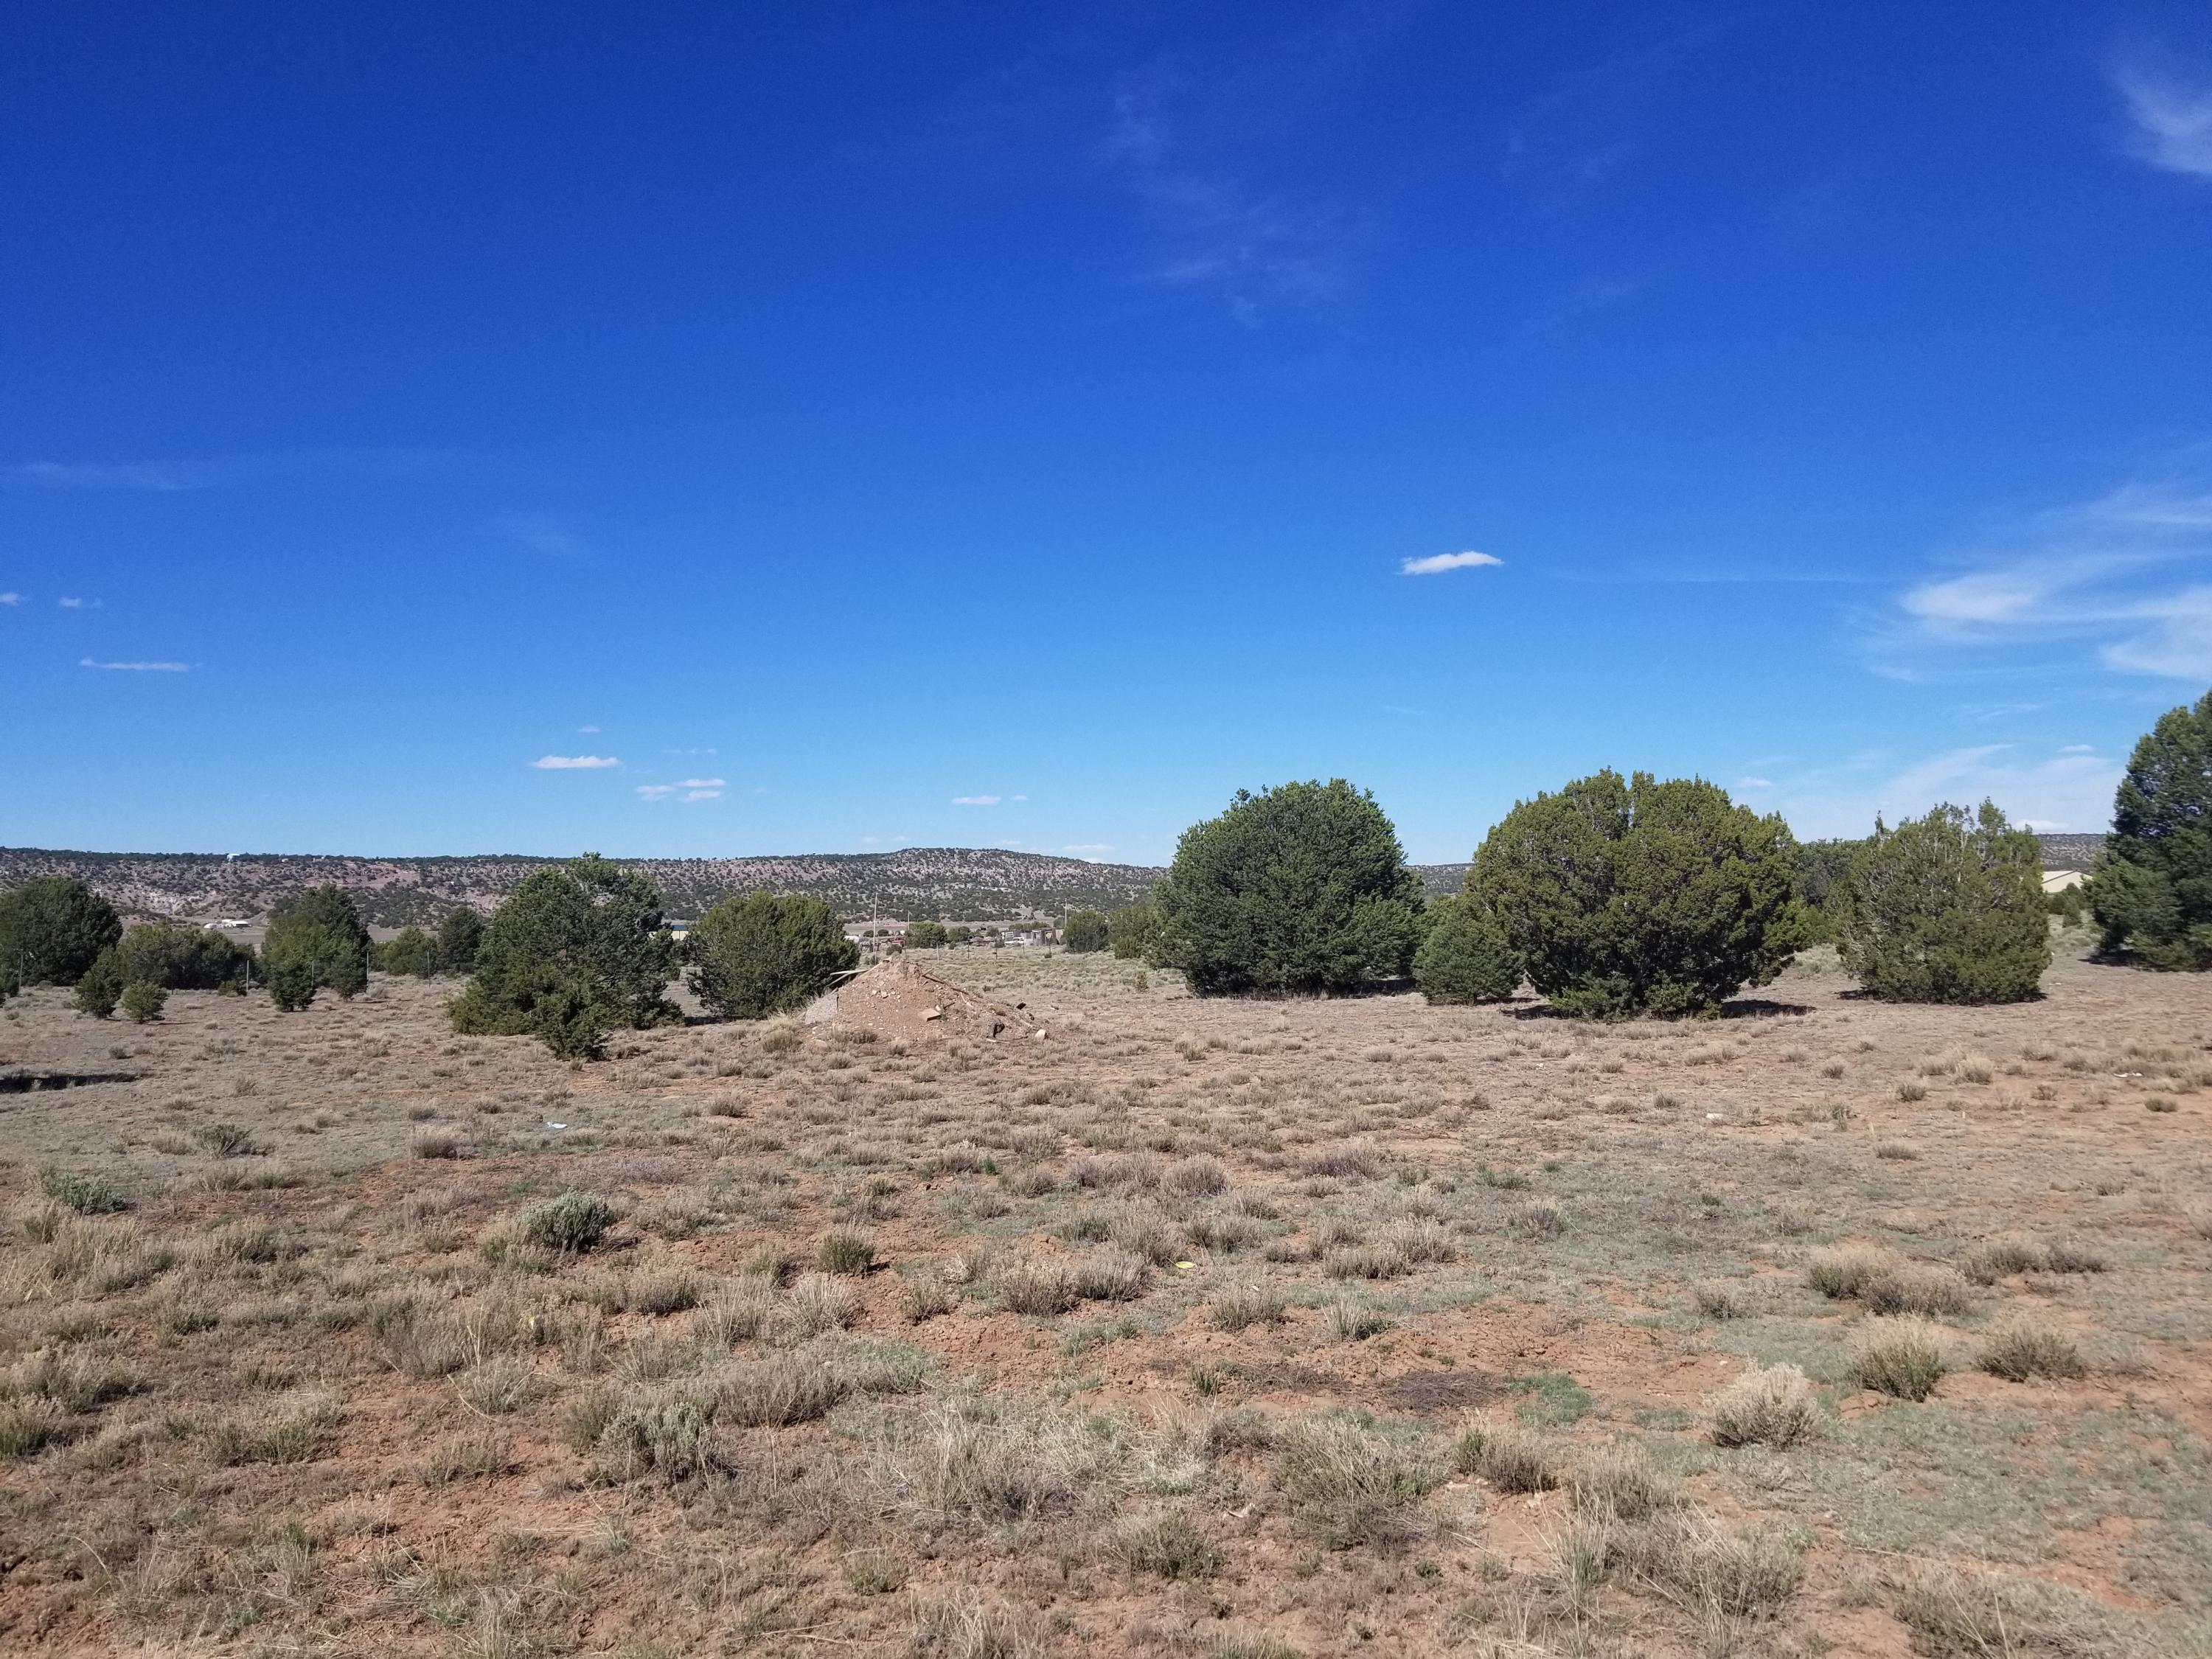 tbd Sewald Drive, Thoreau, NM 87323 - Thoreau, NM real estate listing